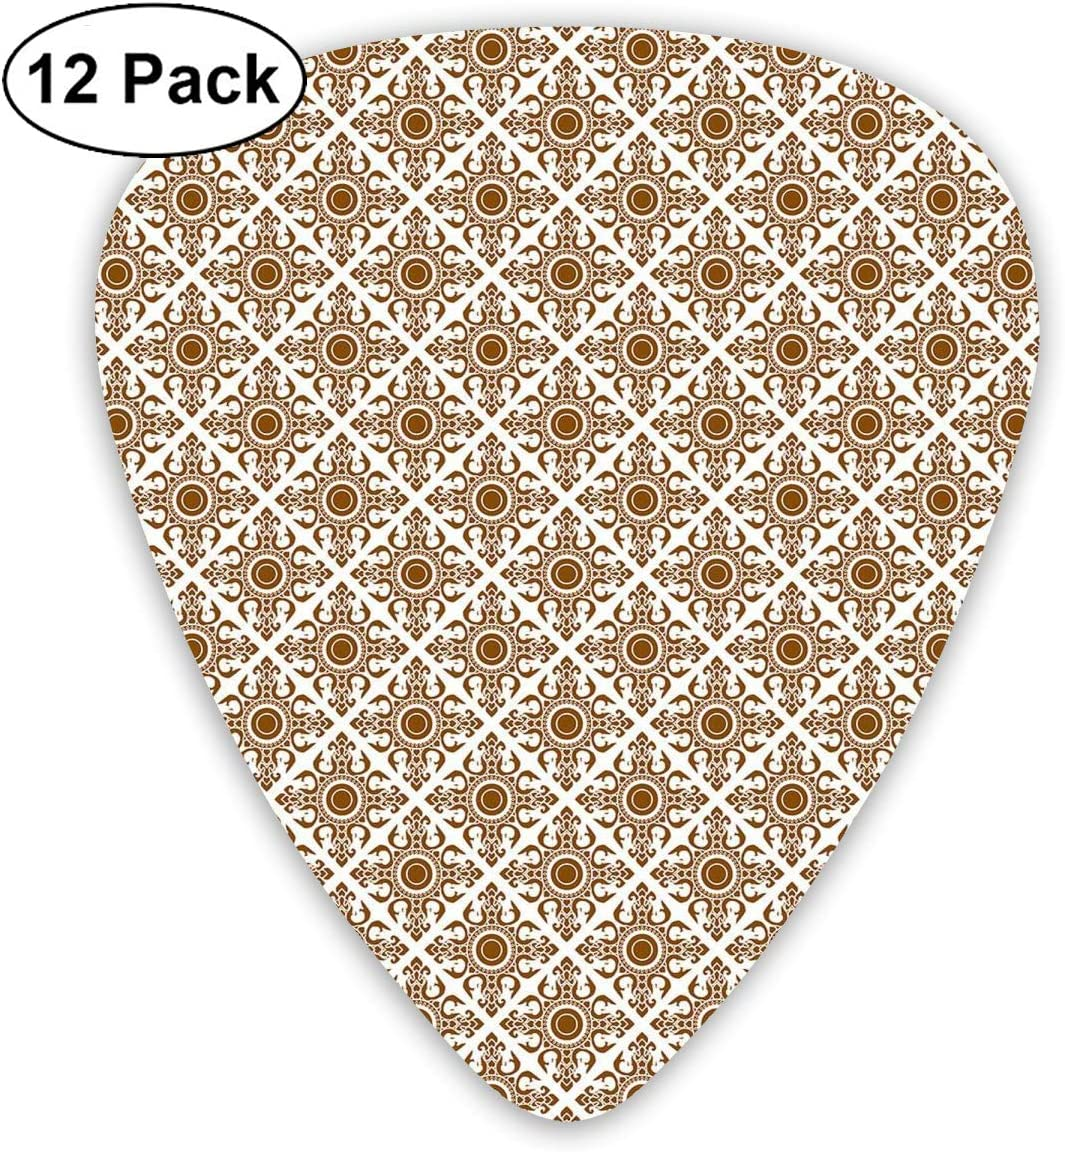 Guitar Picks12pcs Plectrum (0.46mm-0.96mm), Winter Landscape With Show Covered Country House Hut In Trees Rural Picture,For Your Guitar or Ukulele